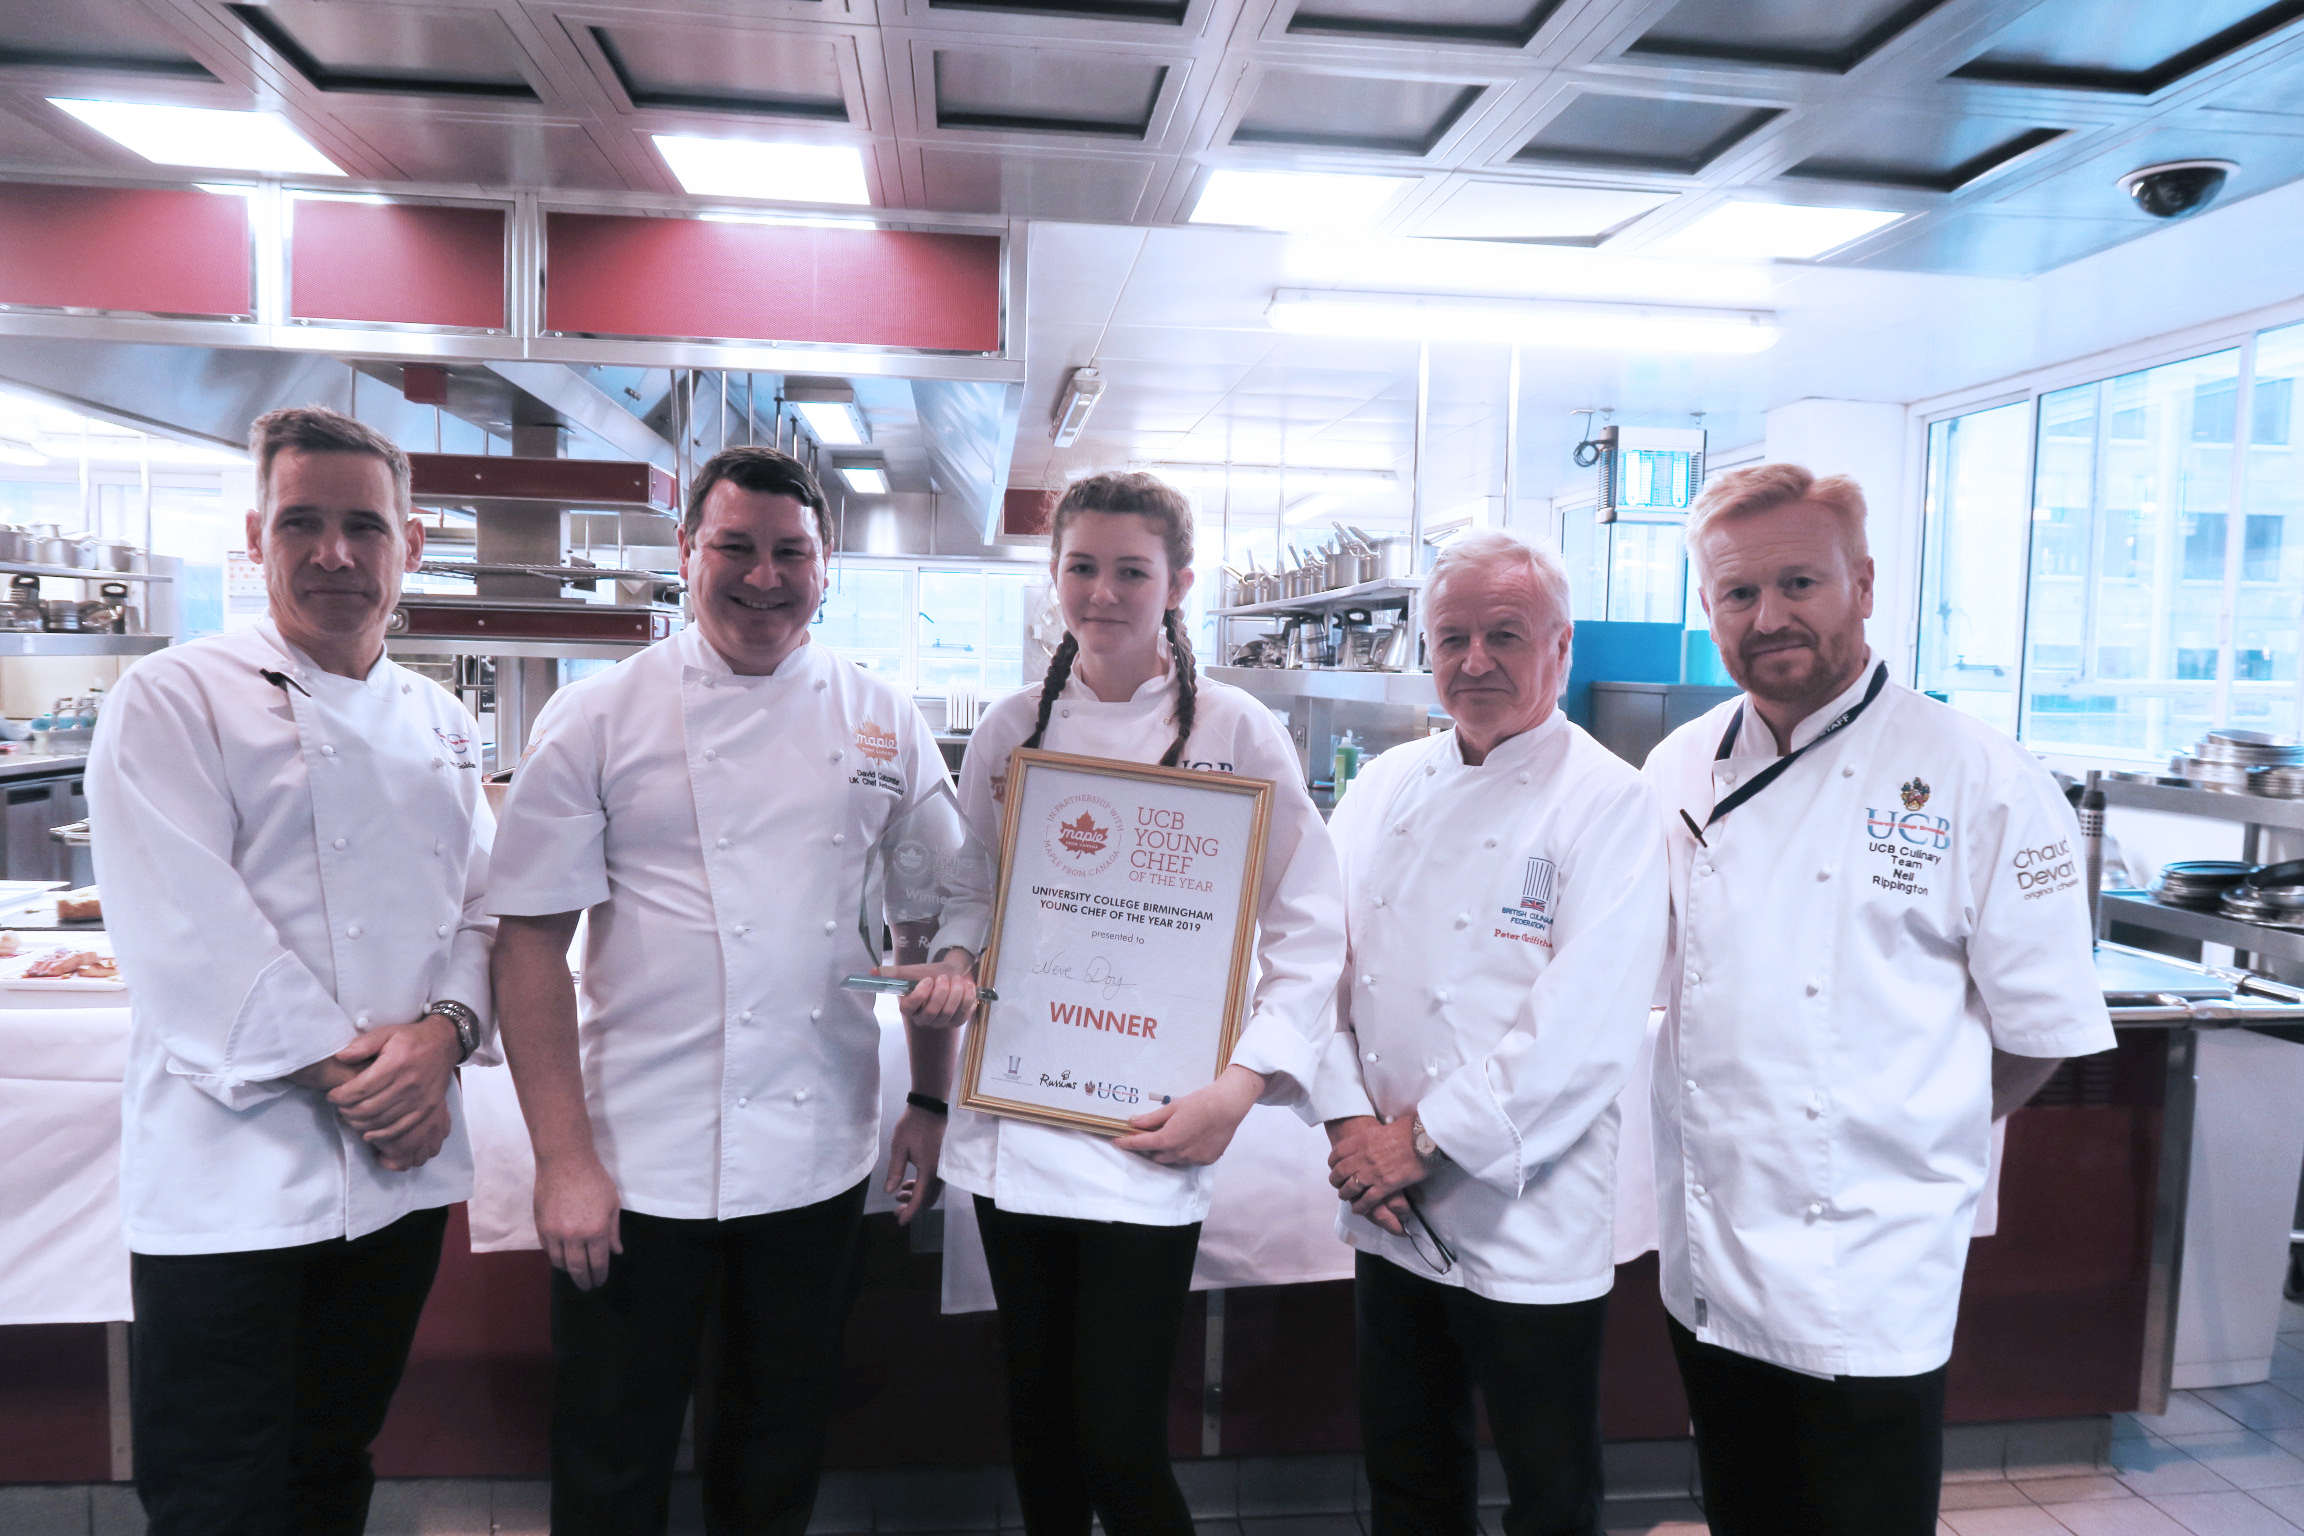 L-r - Gary Goldsmith, chef lecturer at UCB, with winner Neve Doy and judges - David Colcombe, former president of the British Culinary Federation Peter Griffiths and Neil Rippington